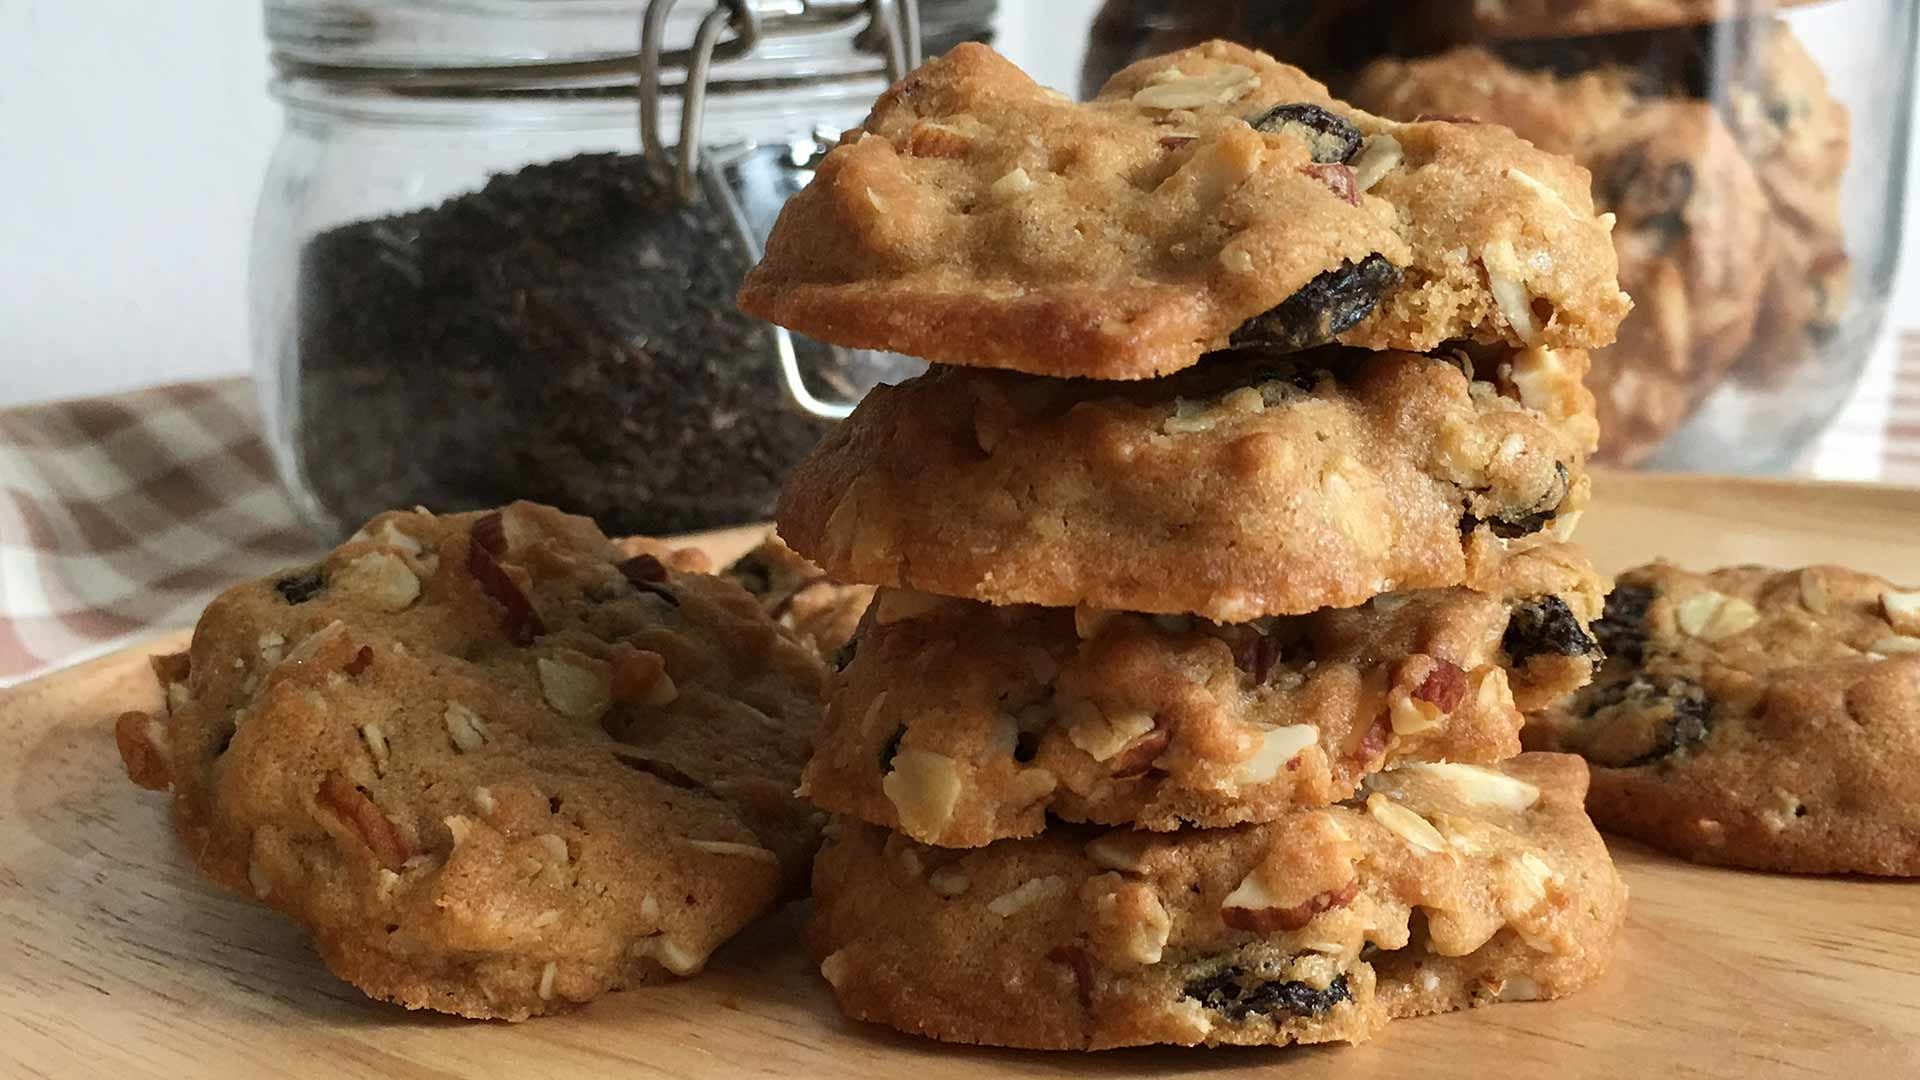 Highly textured cookies with nuts and coconut.